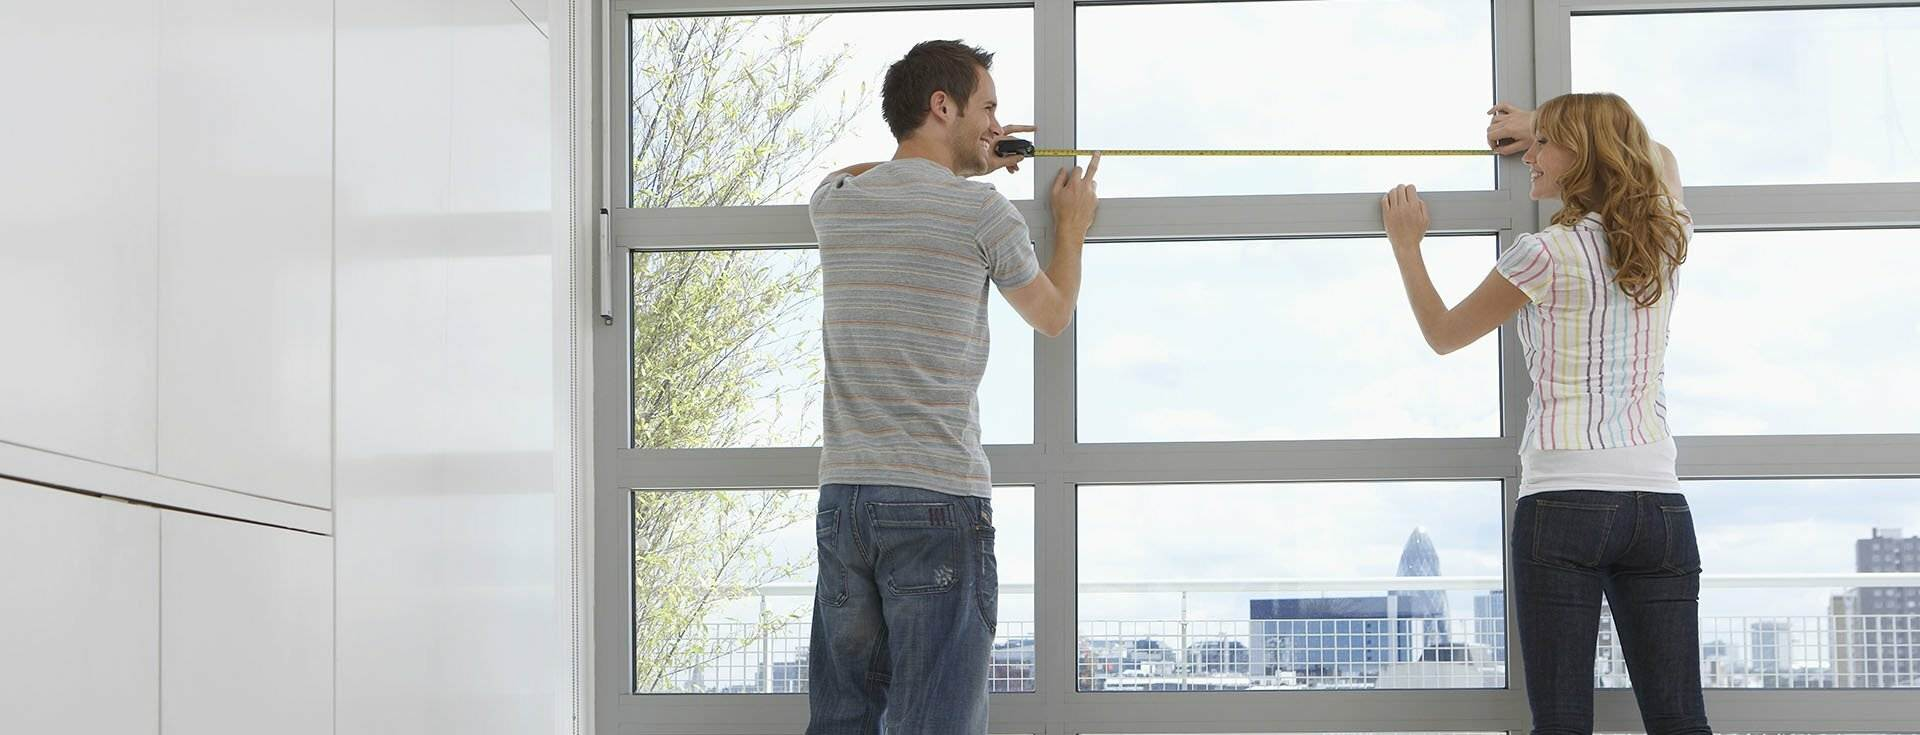 Image of young couple measuring home for a renovation representing NBS Home Loans Best Home Loan Financial Services for All Australians